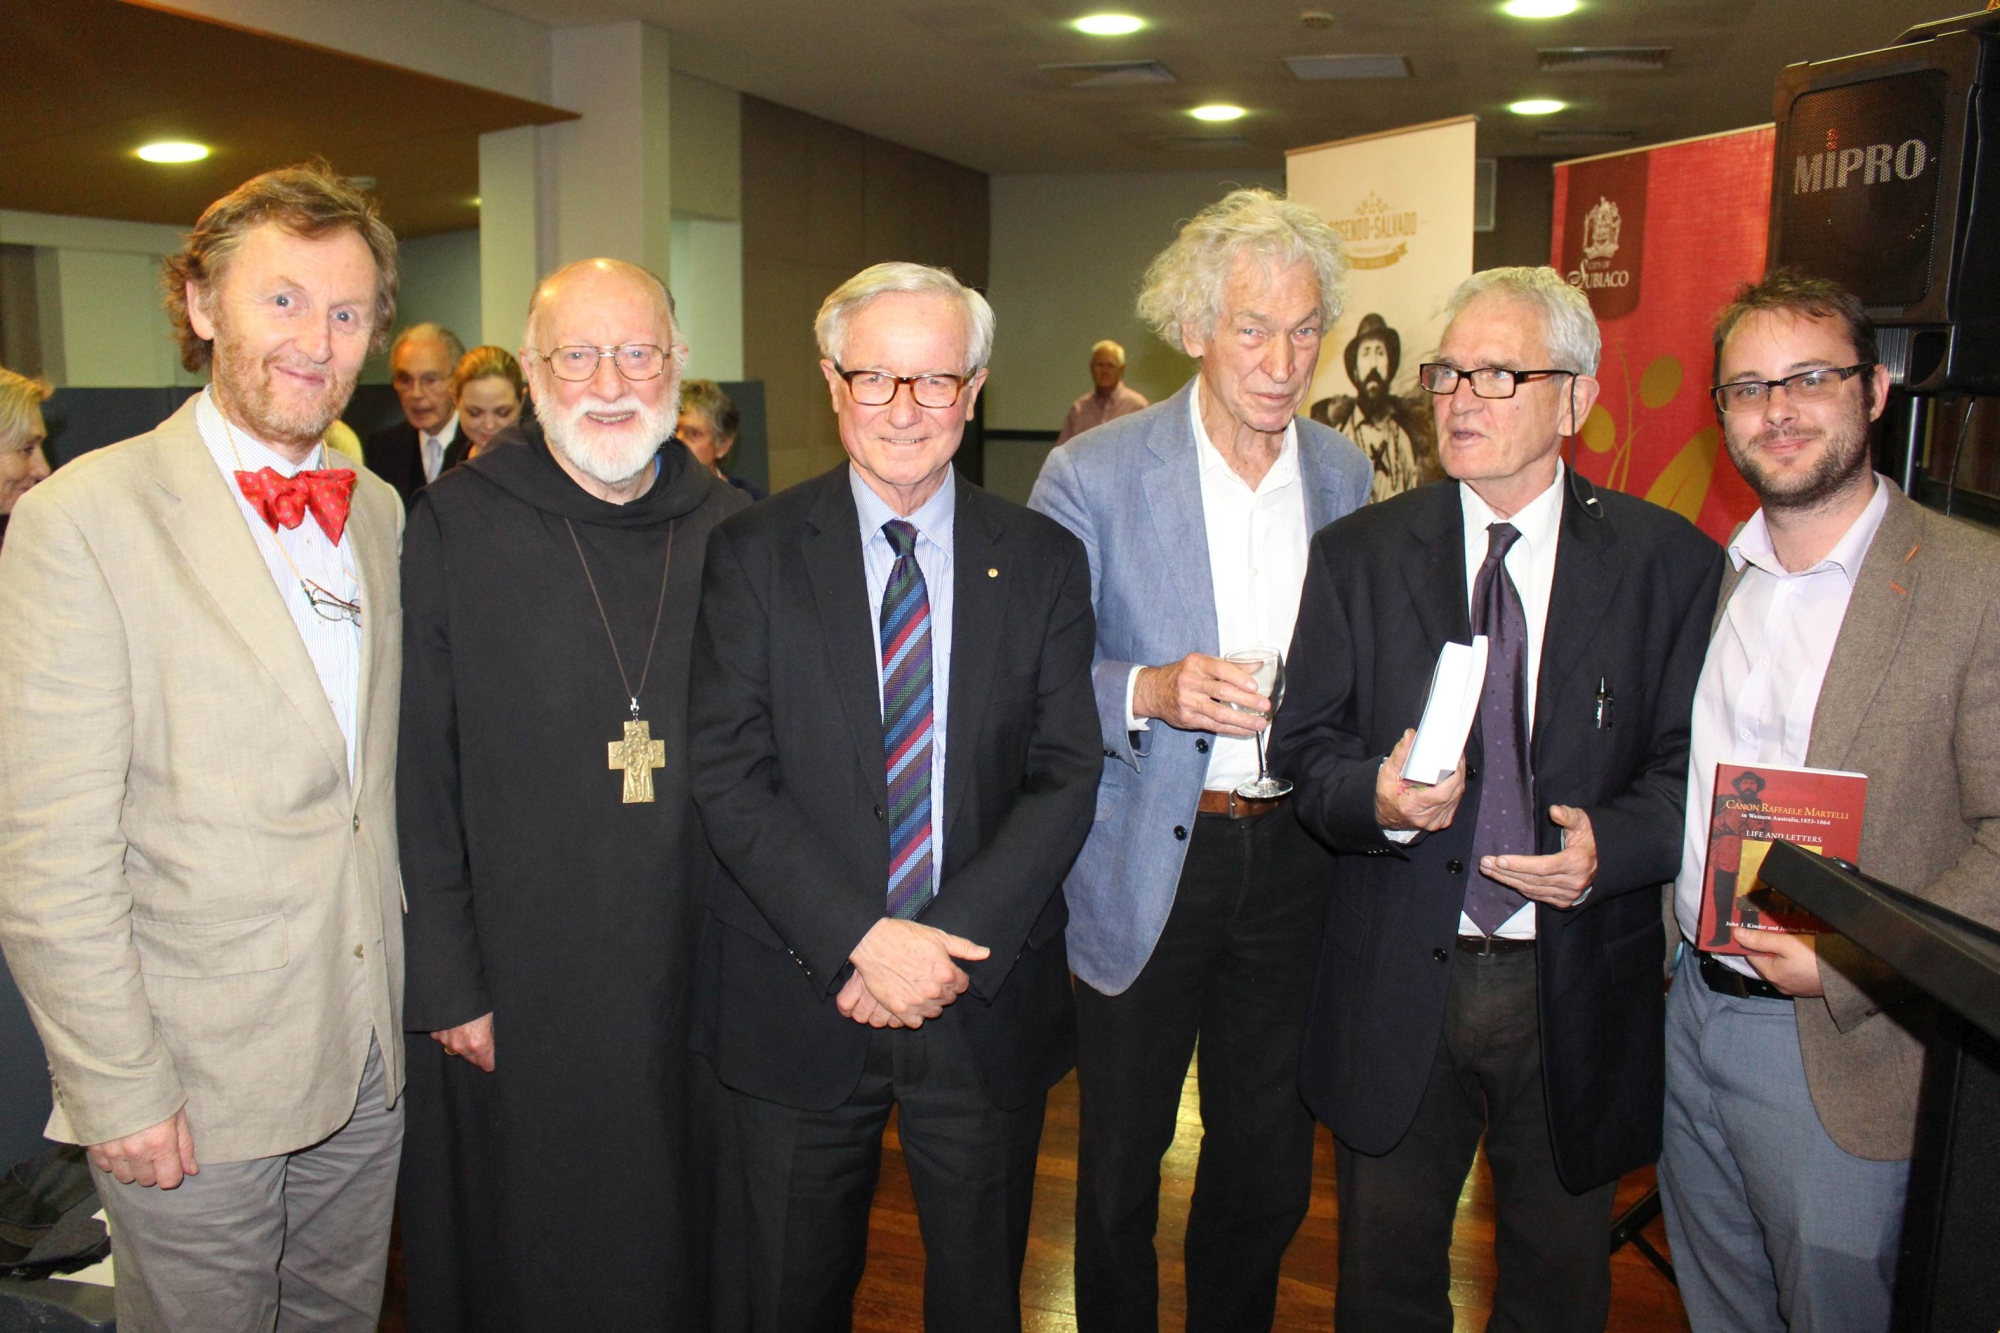 Fred Chaney (third from left) with authors and translators (from left) John Kinder, Bernard Rooney, Bob Reece, Peter Gilet and Joshua Brown.